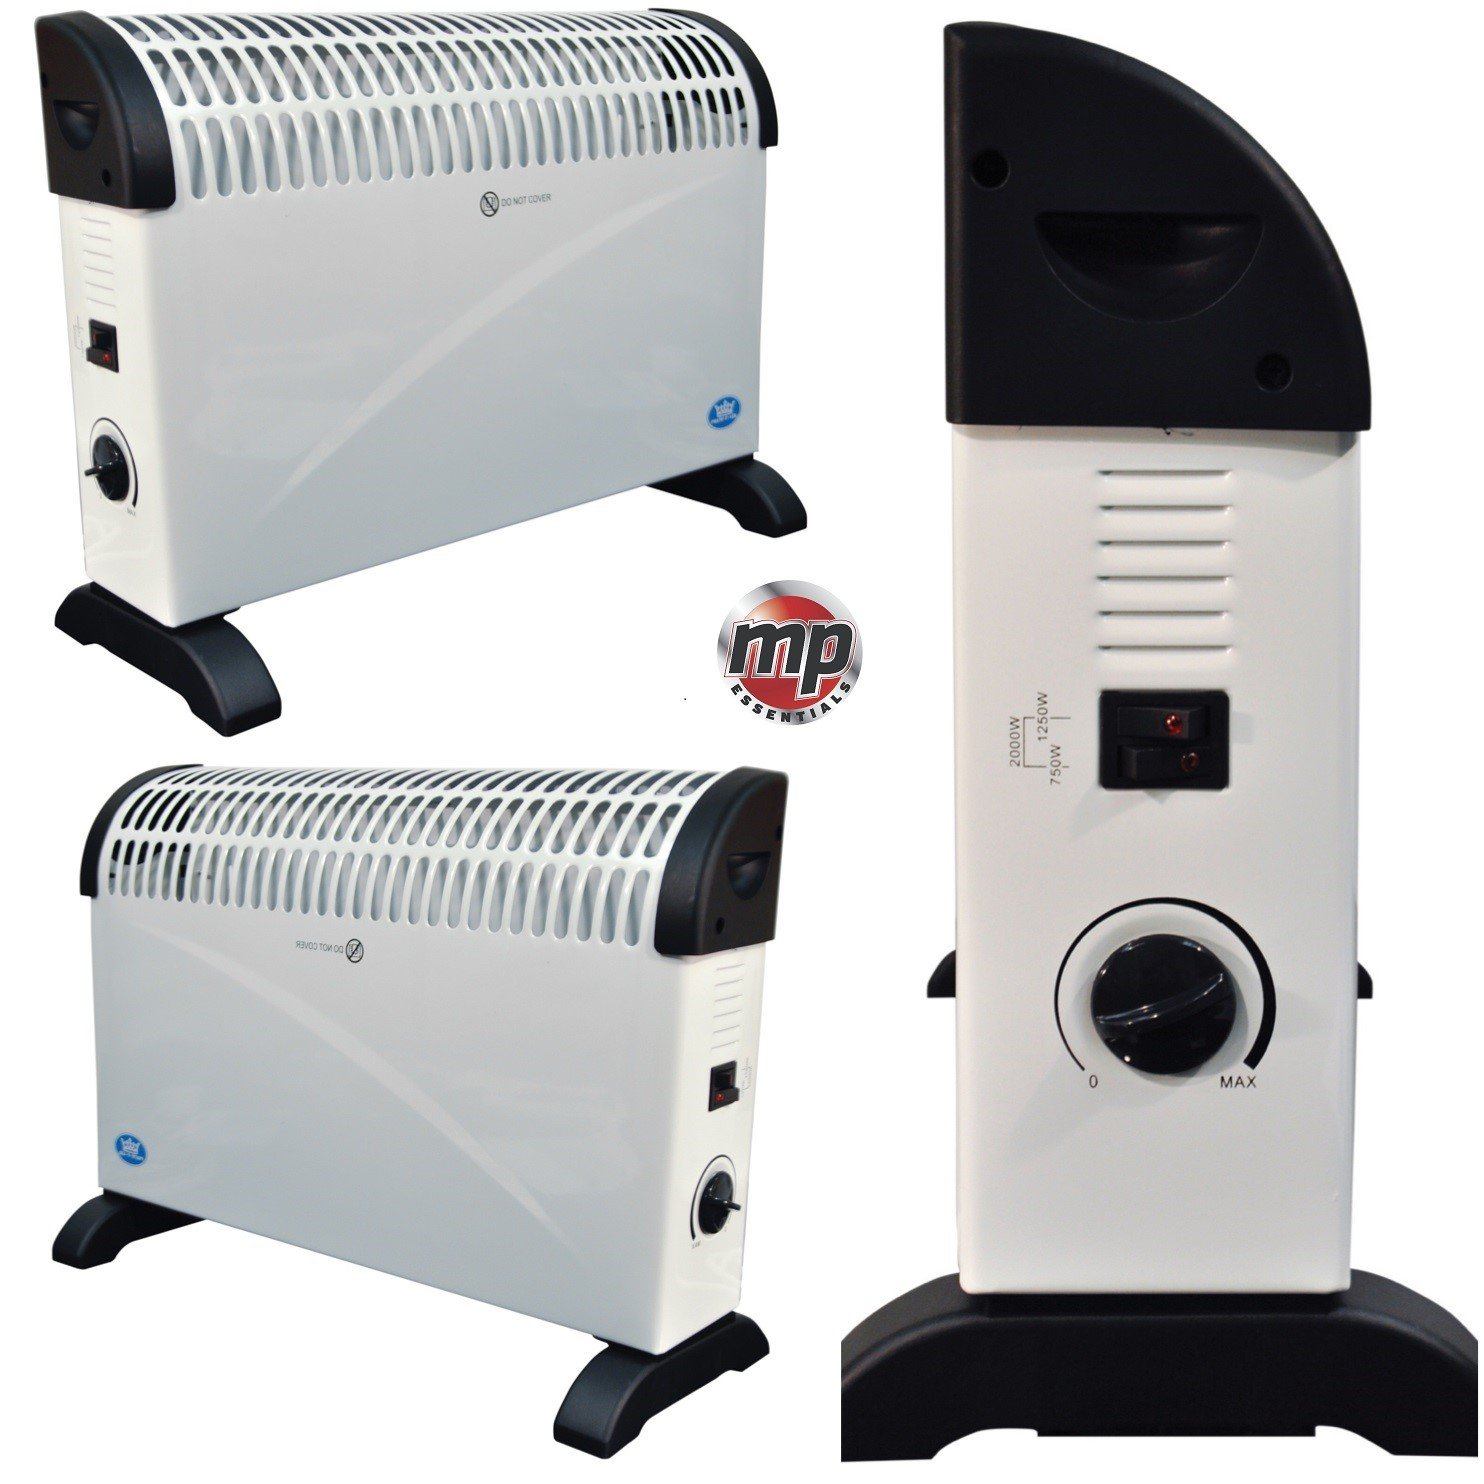 2 x MP Essentials 2kW Home & Office Convector Radiator Heaters (Wall Mounted or Floor Standing)